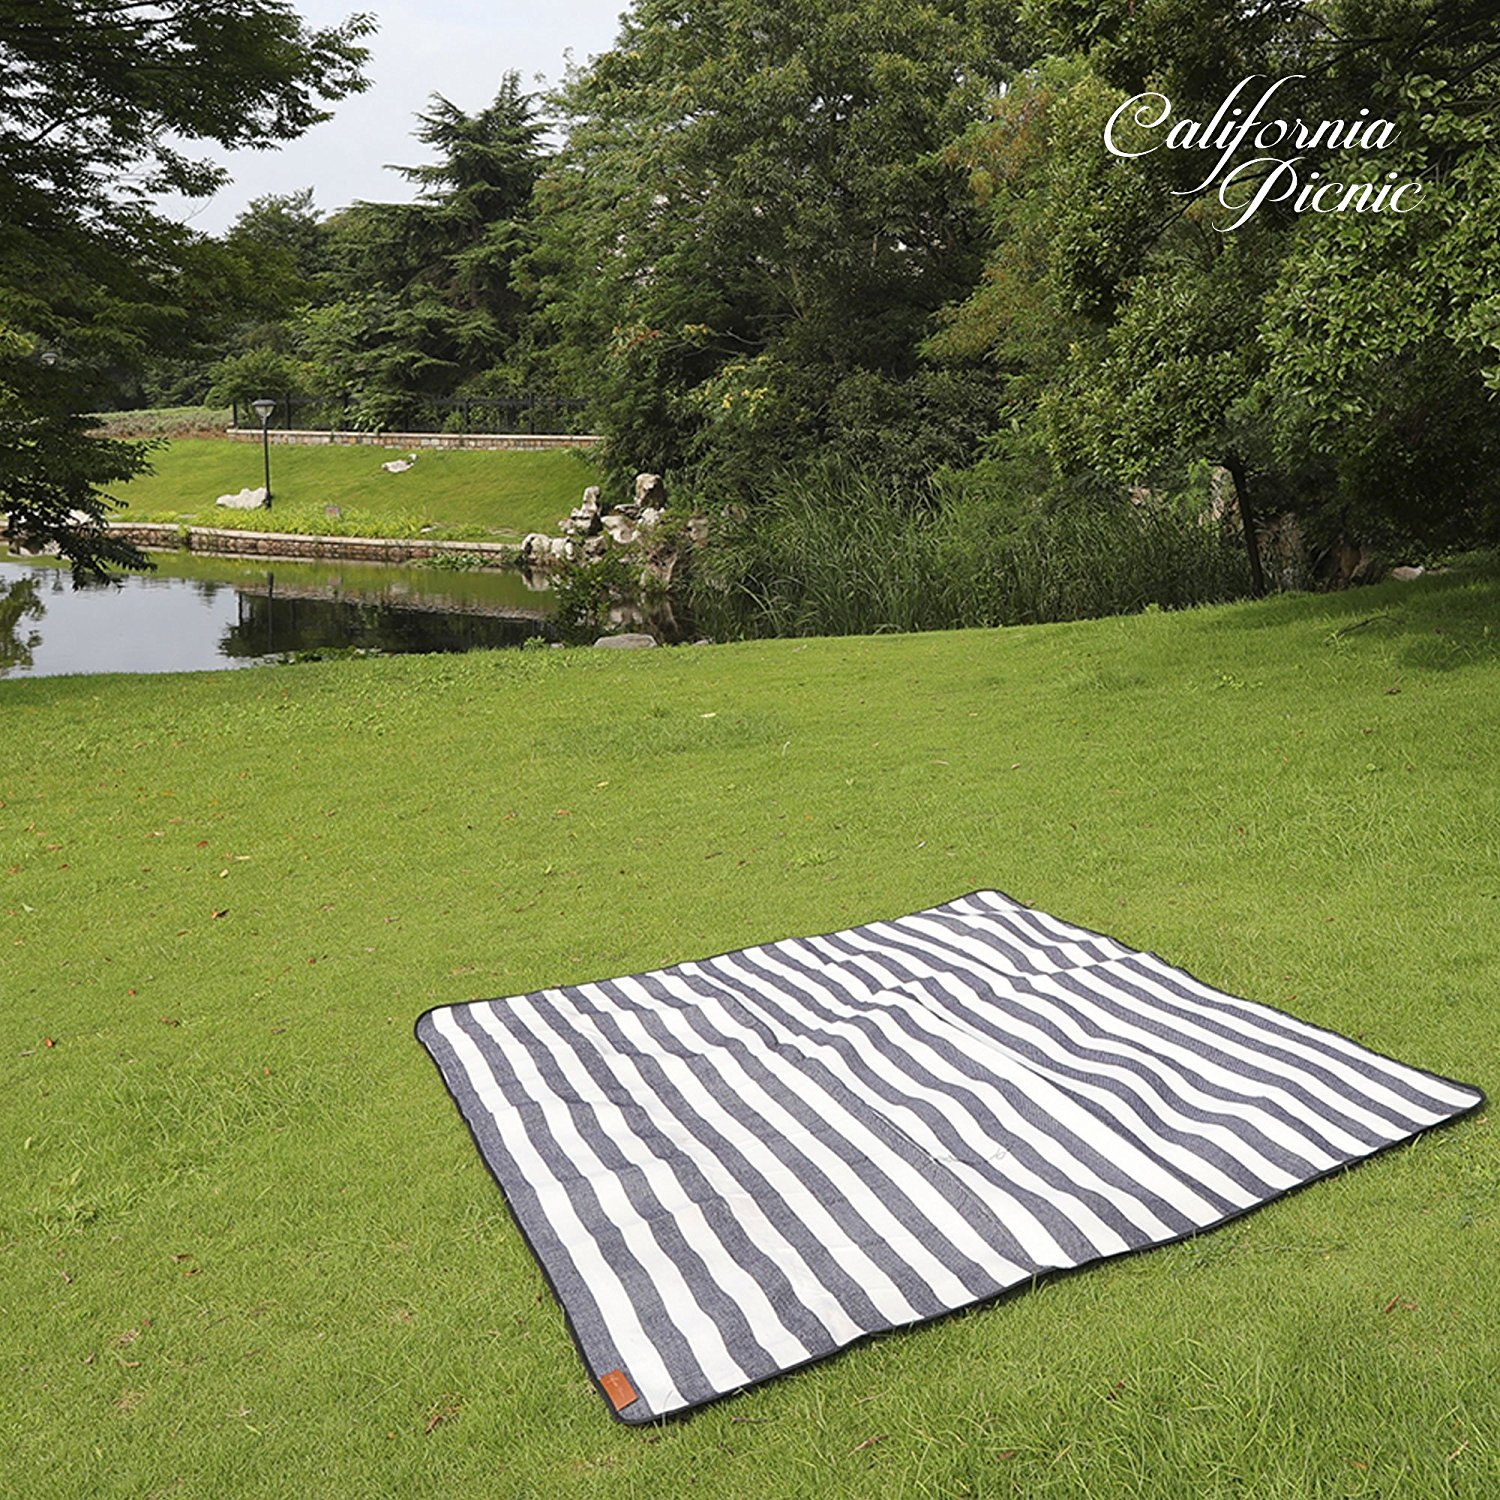 Blue Allegrow Extra Large Waterproof Picnic Beach Blanket Sand Proof Wet Lawn Oversize Water-Resistant Handy Blanket for Outdoor Spring and Summer Picnics and Camping Portable